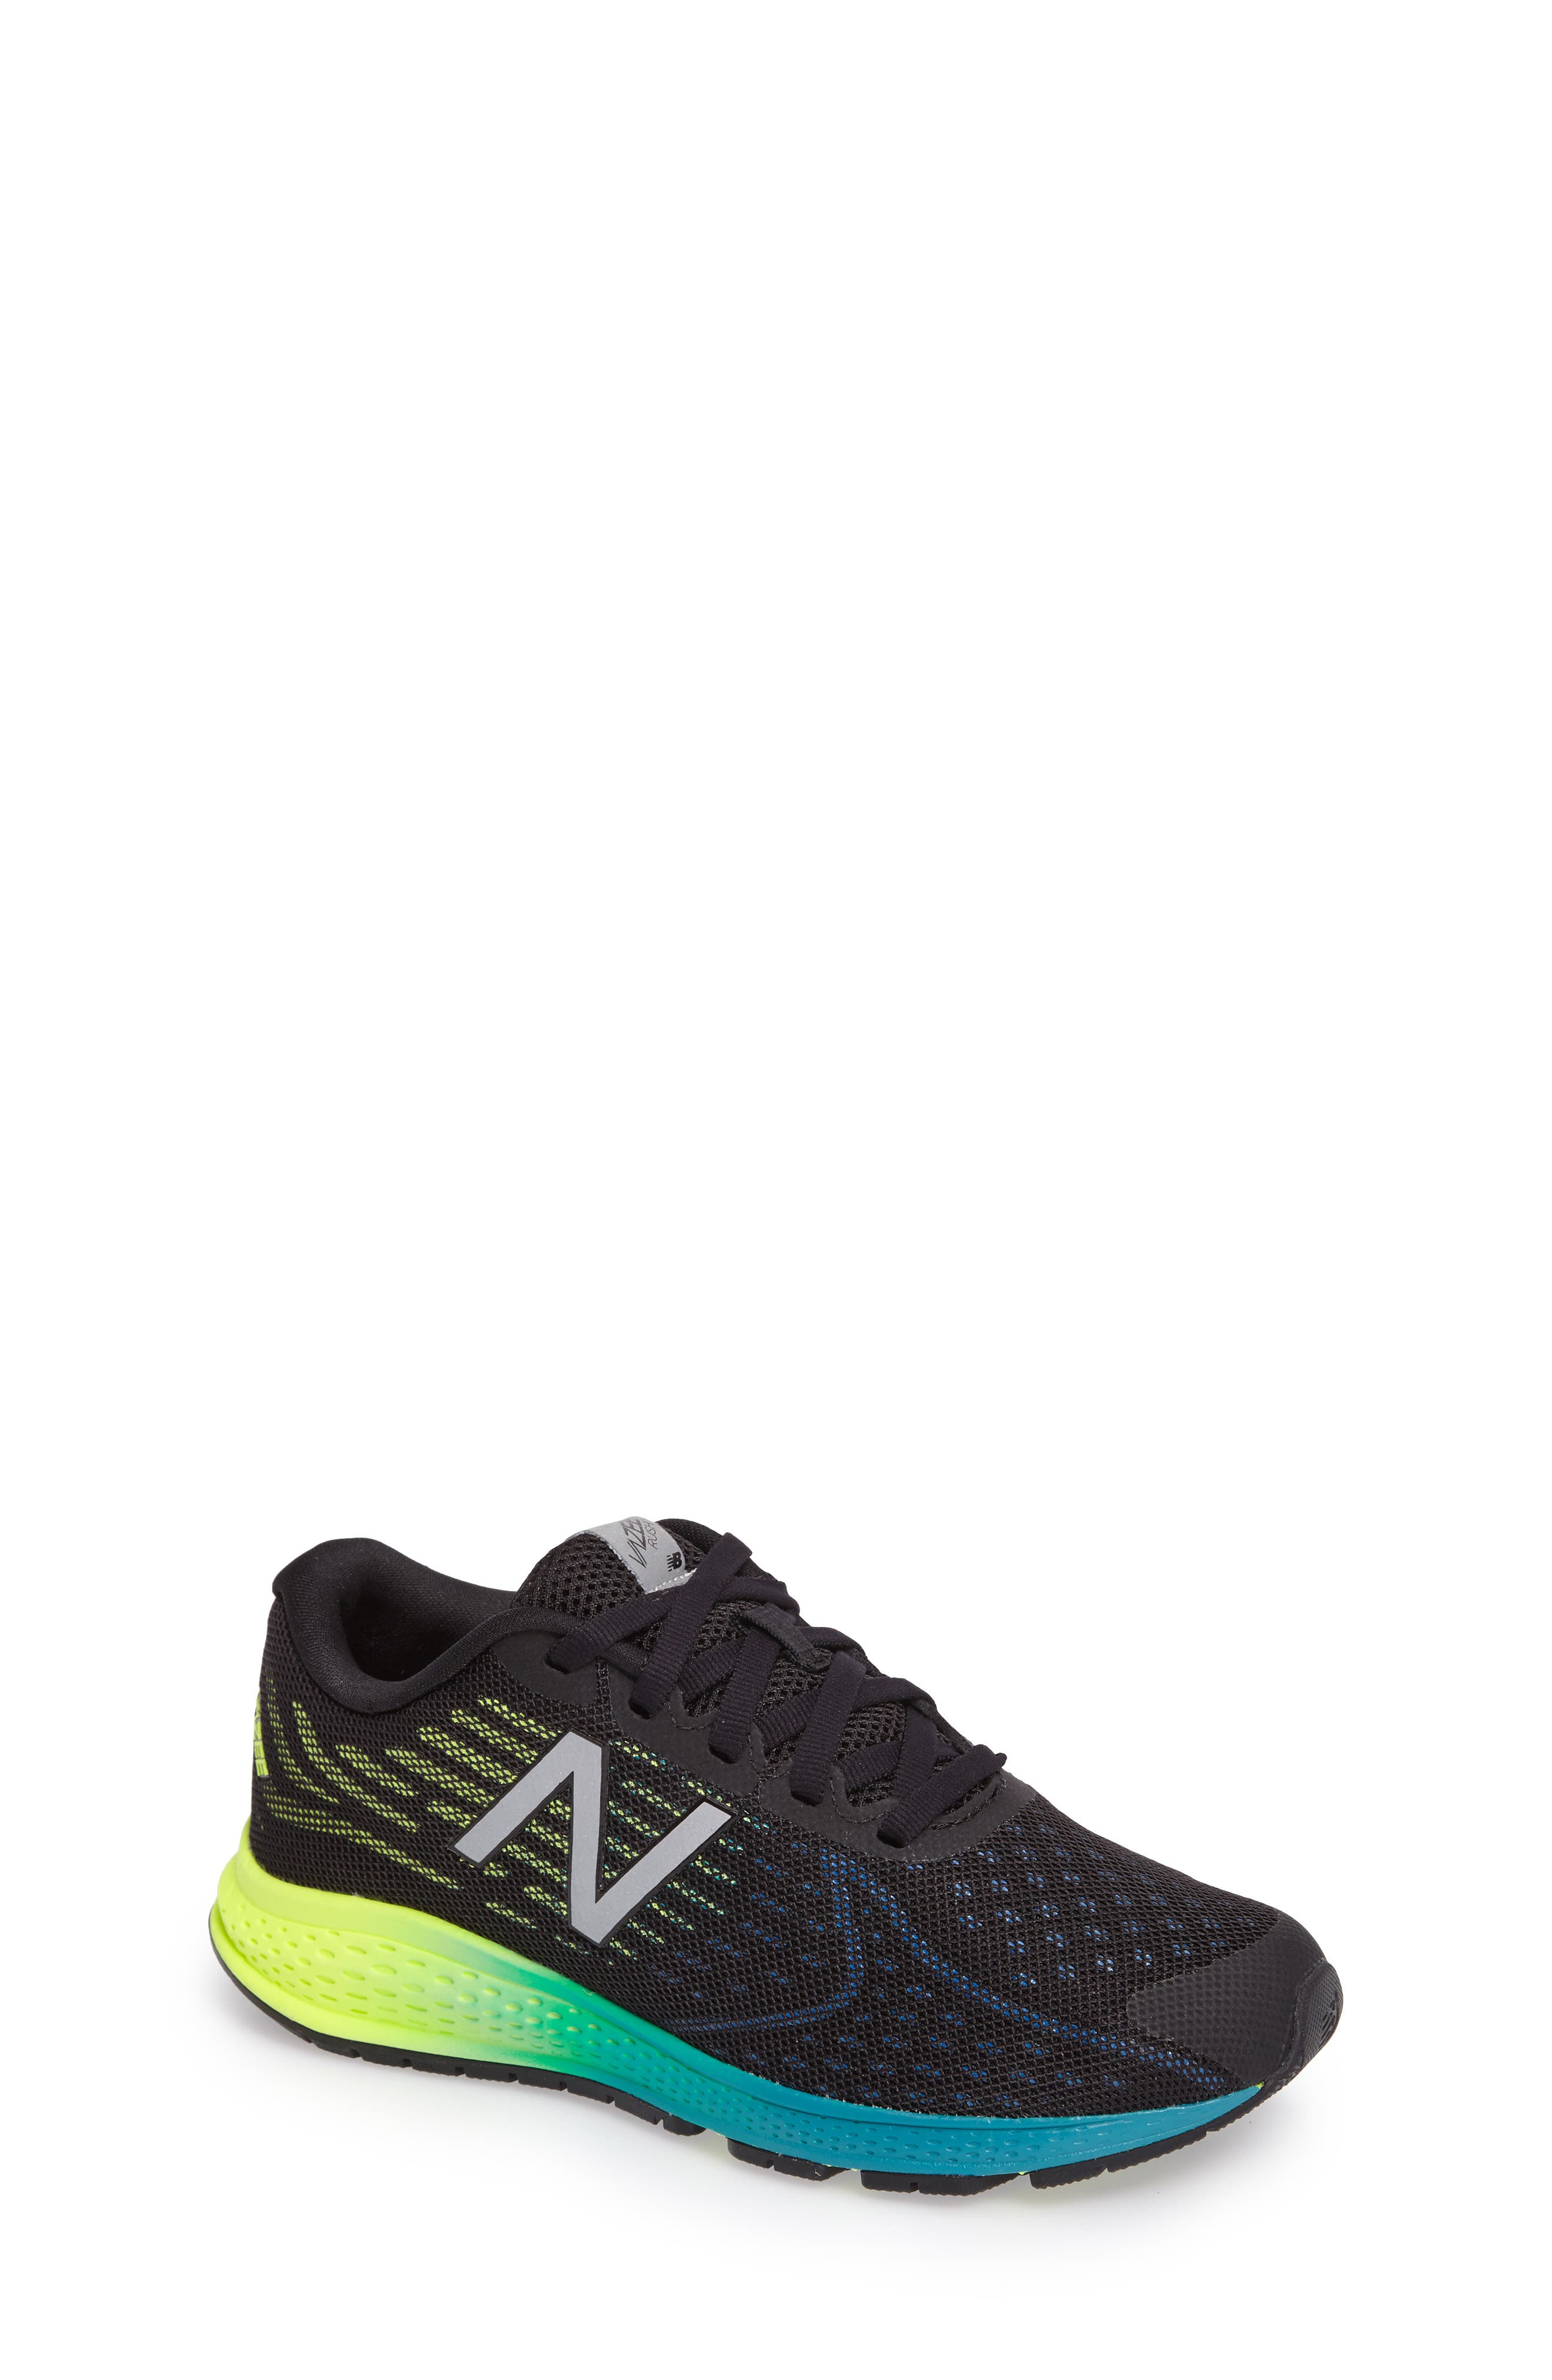 New Balance Vazee Rush 2 Sneaker (Toddler, Little Kid & Big Kid)